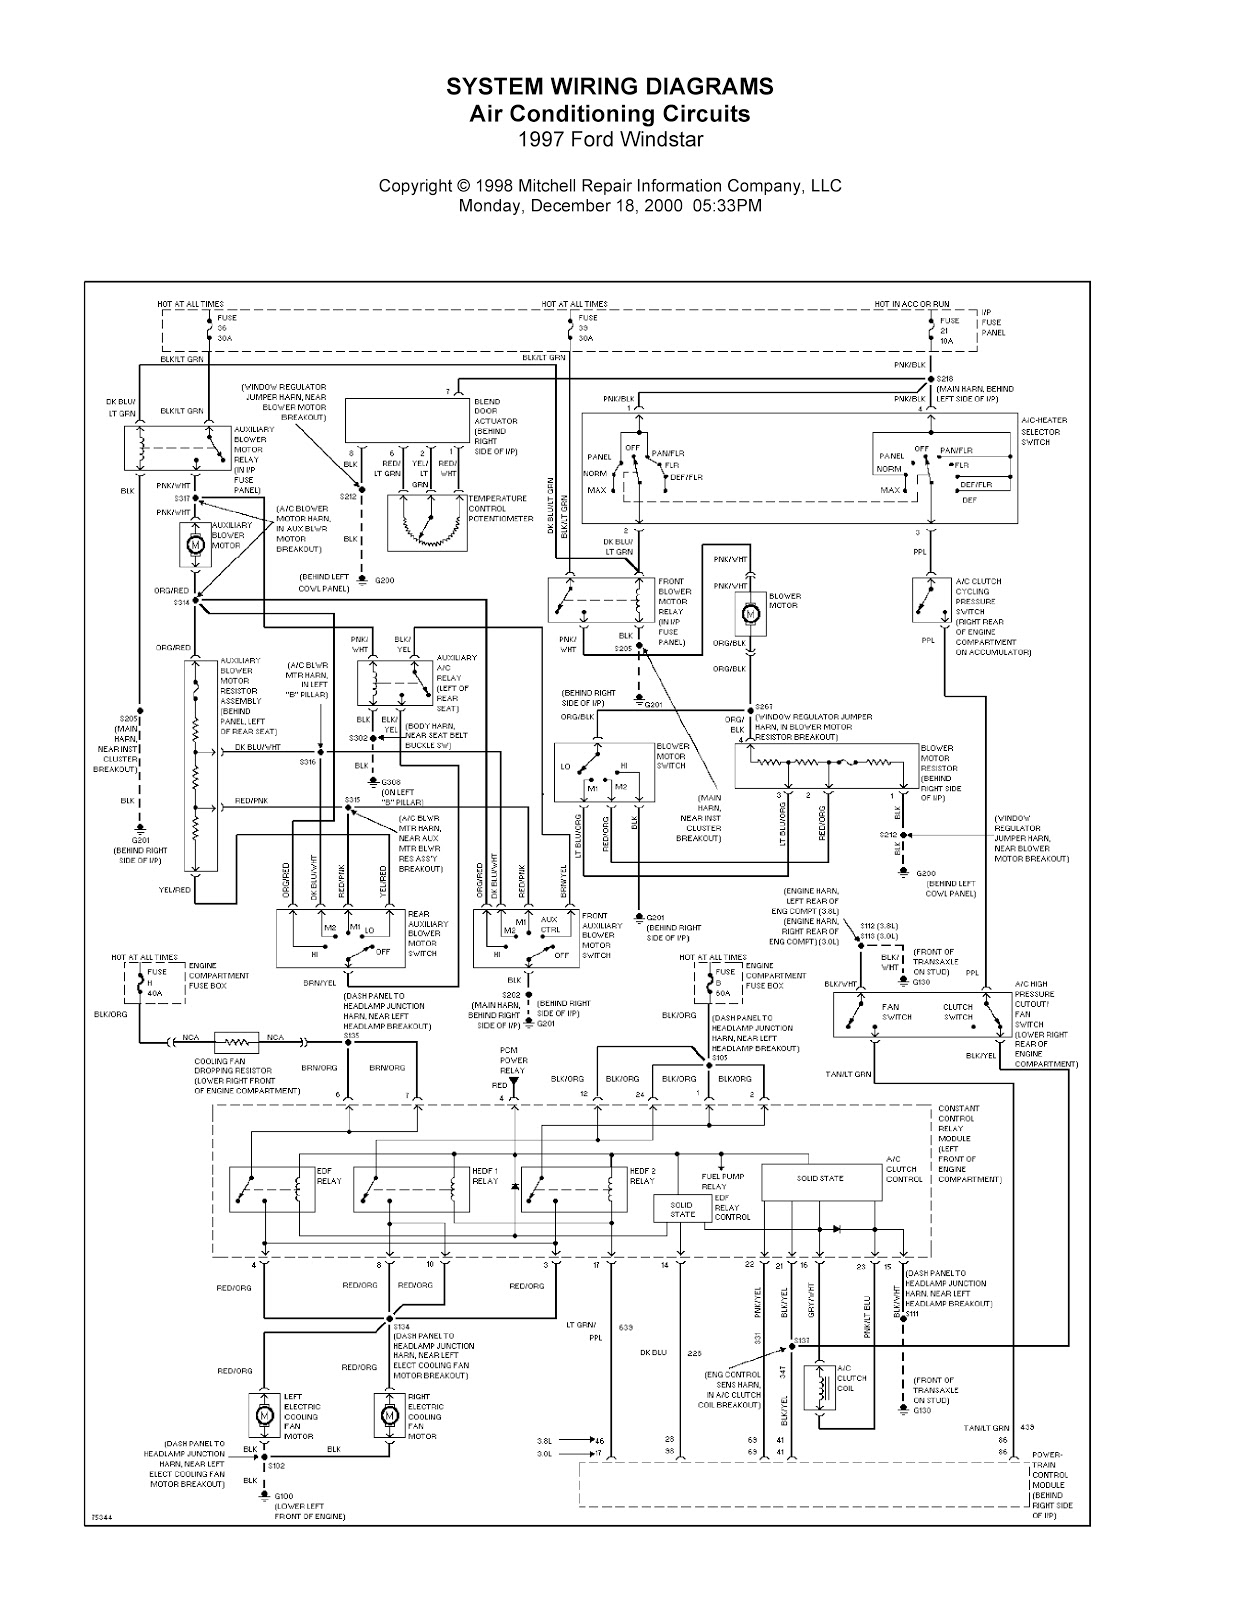 0001 1997 ford windstar complete system wiring diagrams wiring 2002 ford windstar radio wiring diagram at soozxer.org